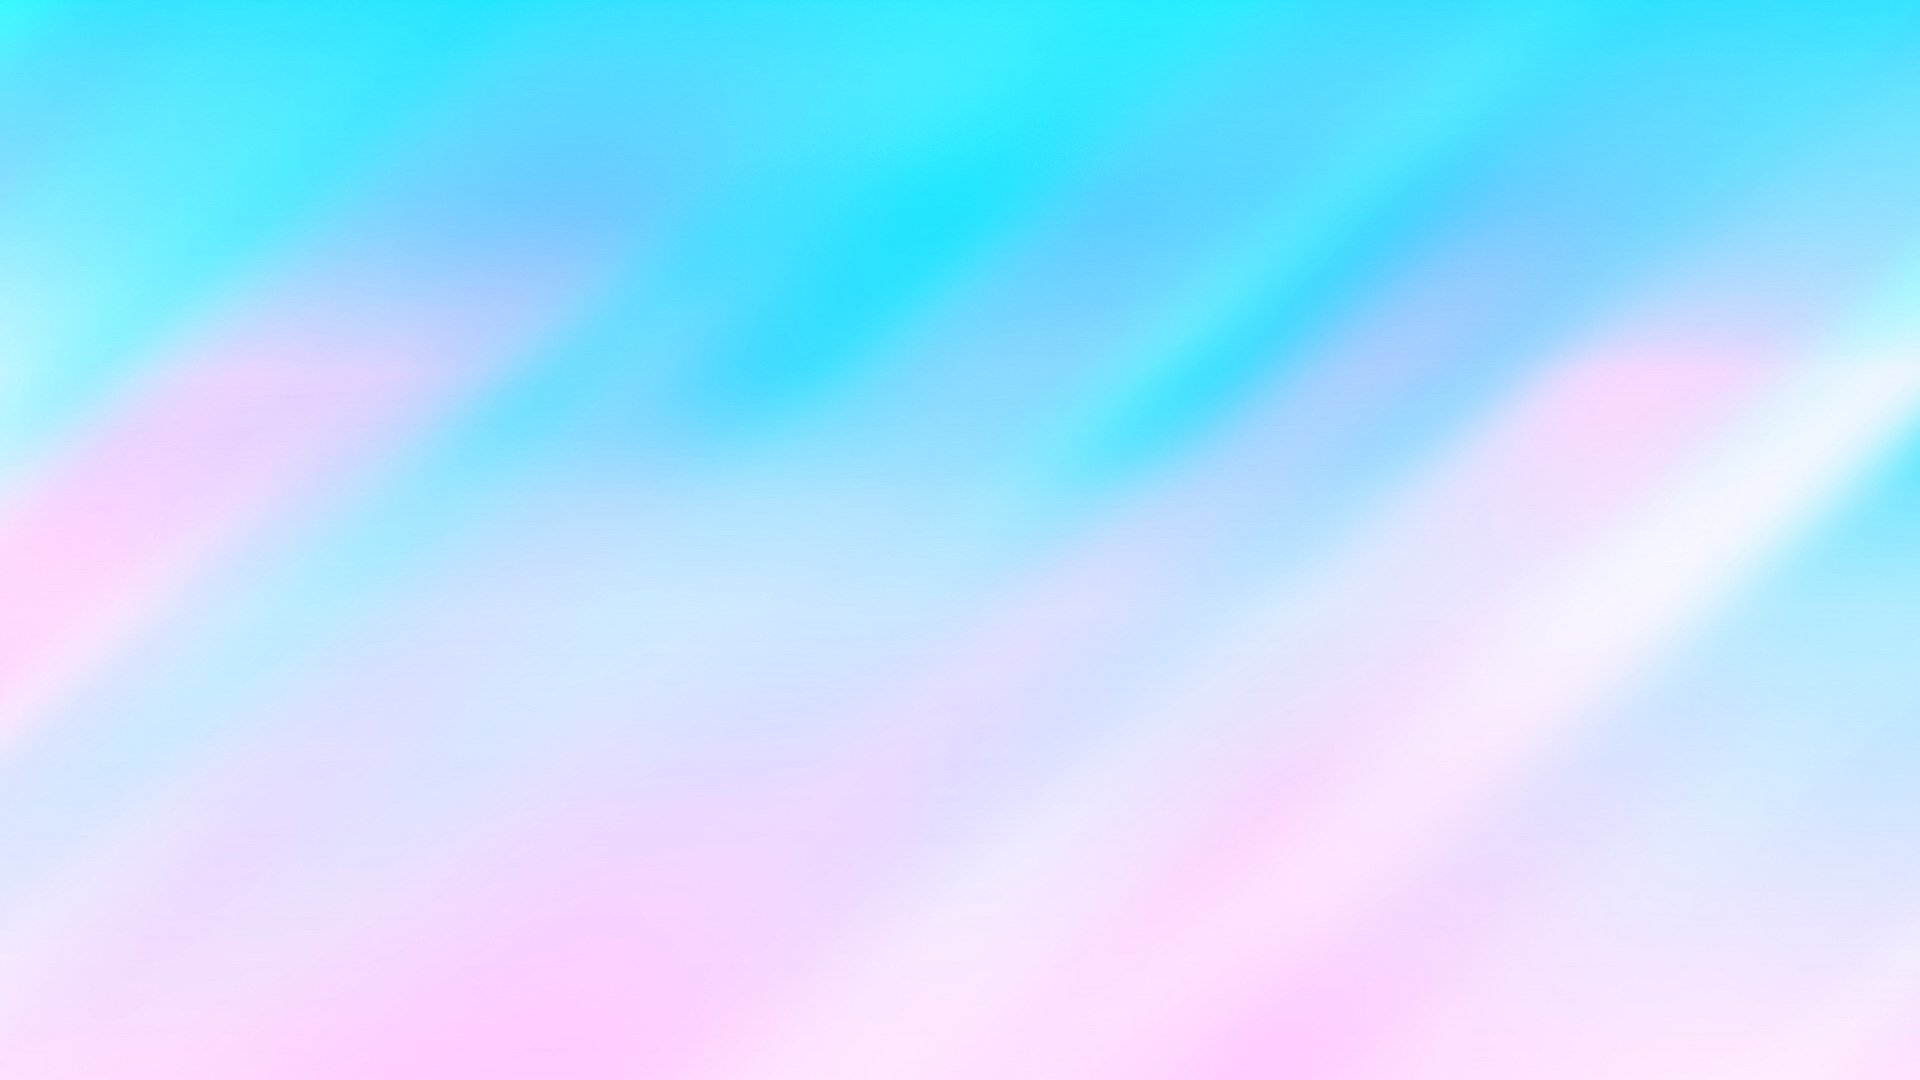 Abstract Art Colorful Colors Design Illustration Light